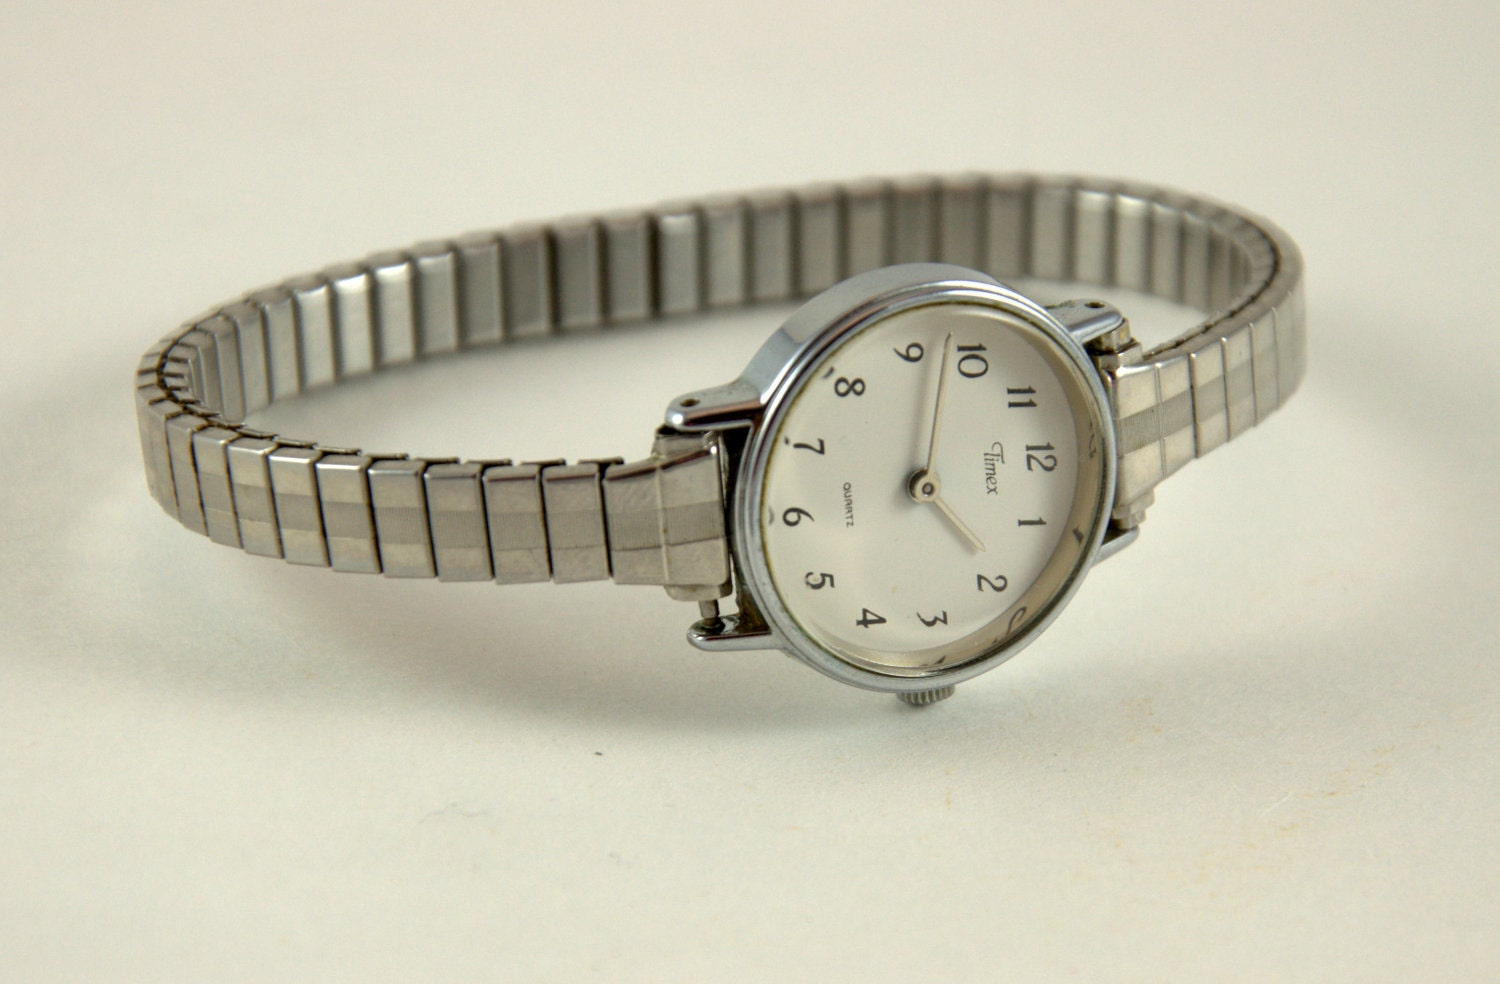 vintage s timex by candlecane123 on etsy